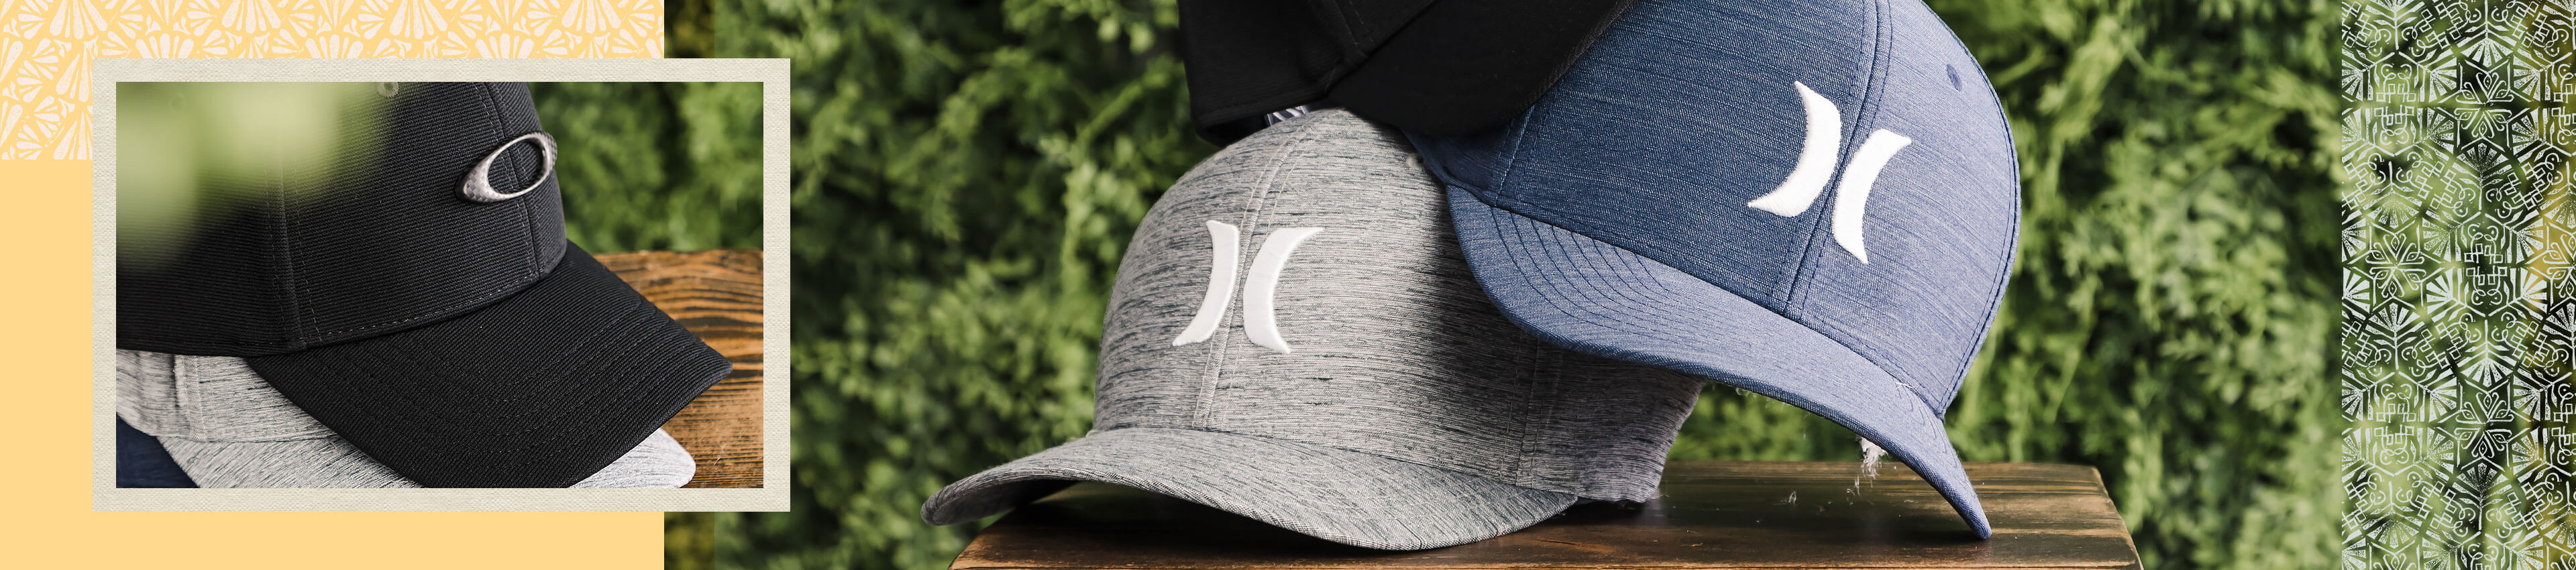 A black Oakley hat and a blue and grey Hurley hats